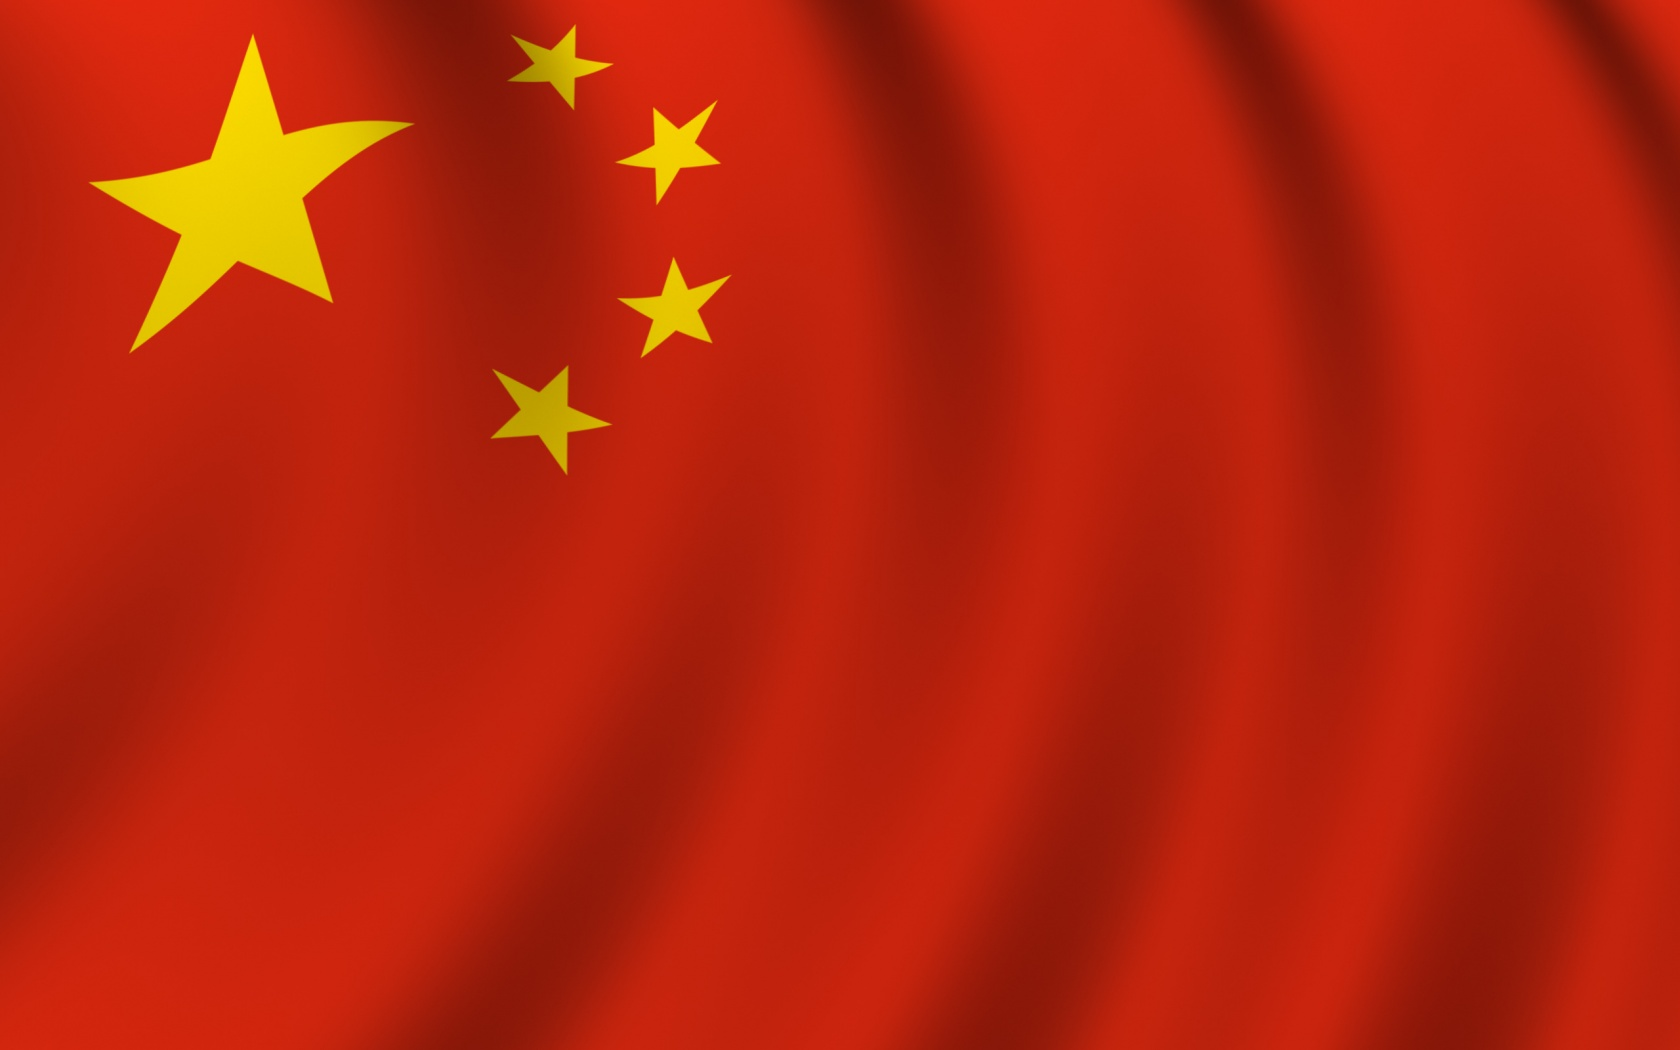 China flag wallpaper in 1680x1050 screen resolution 1680x1050